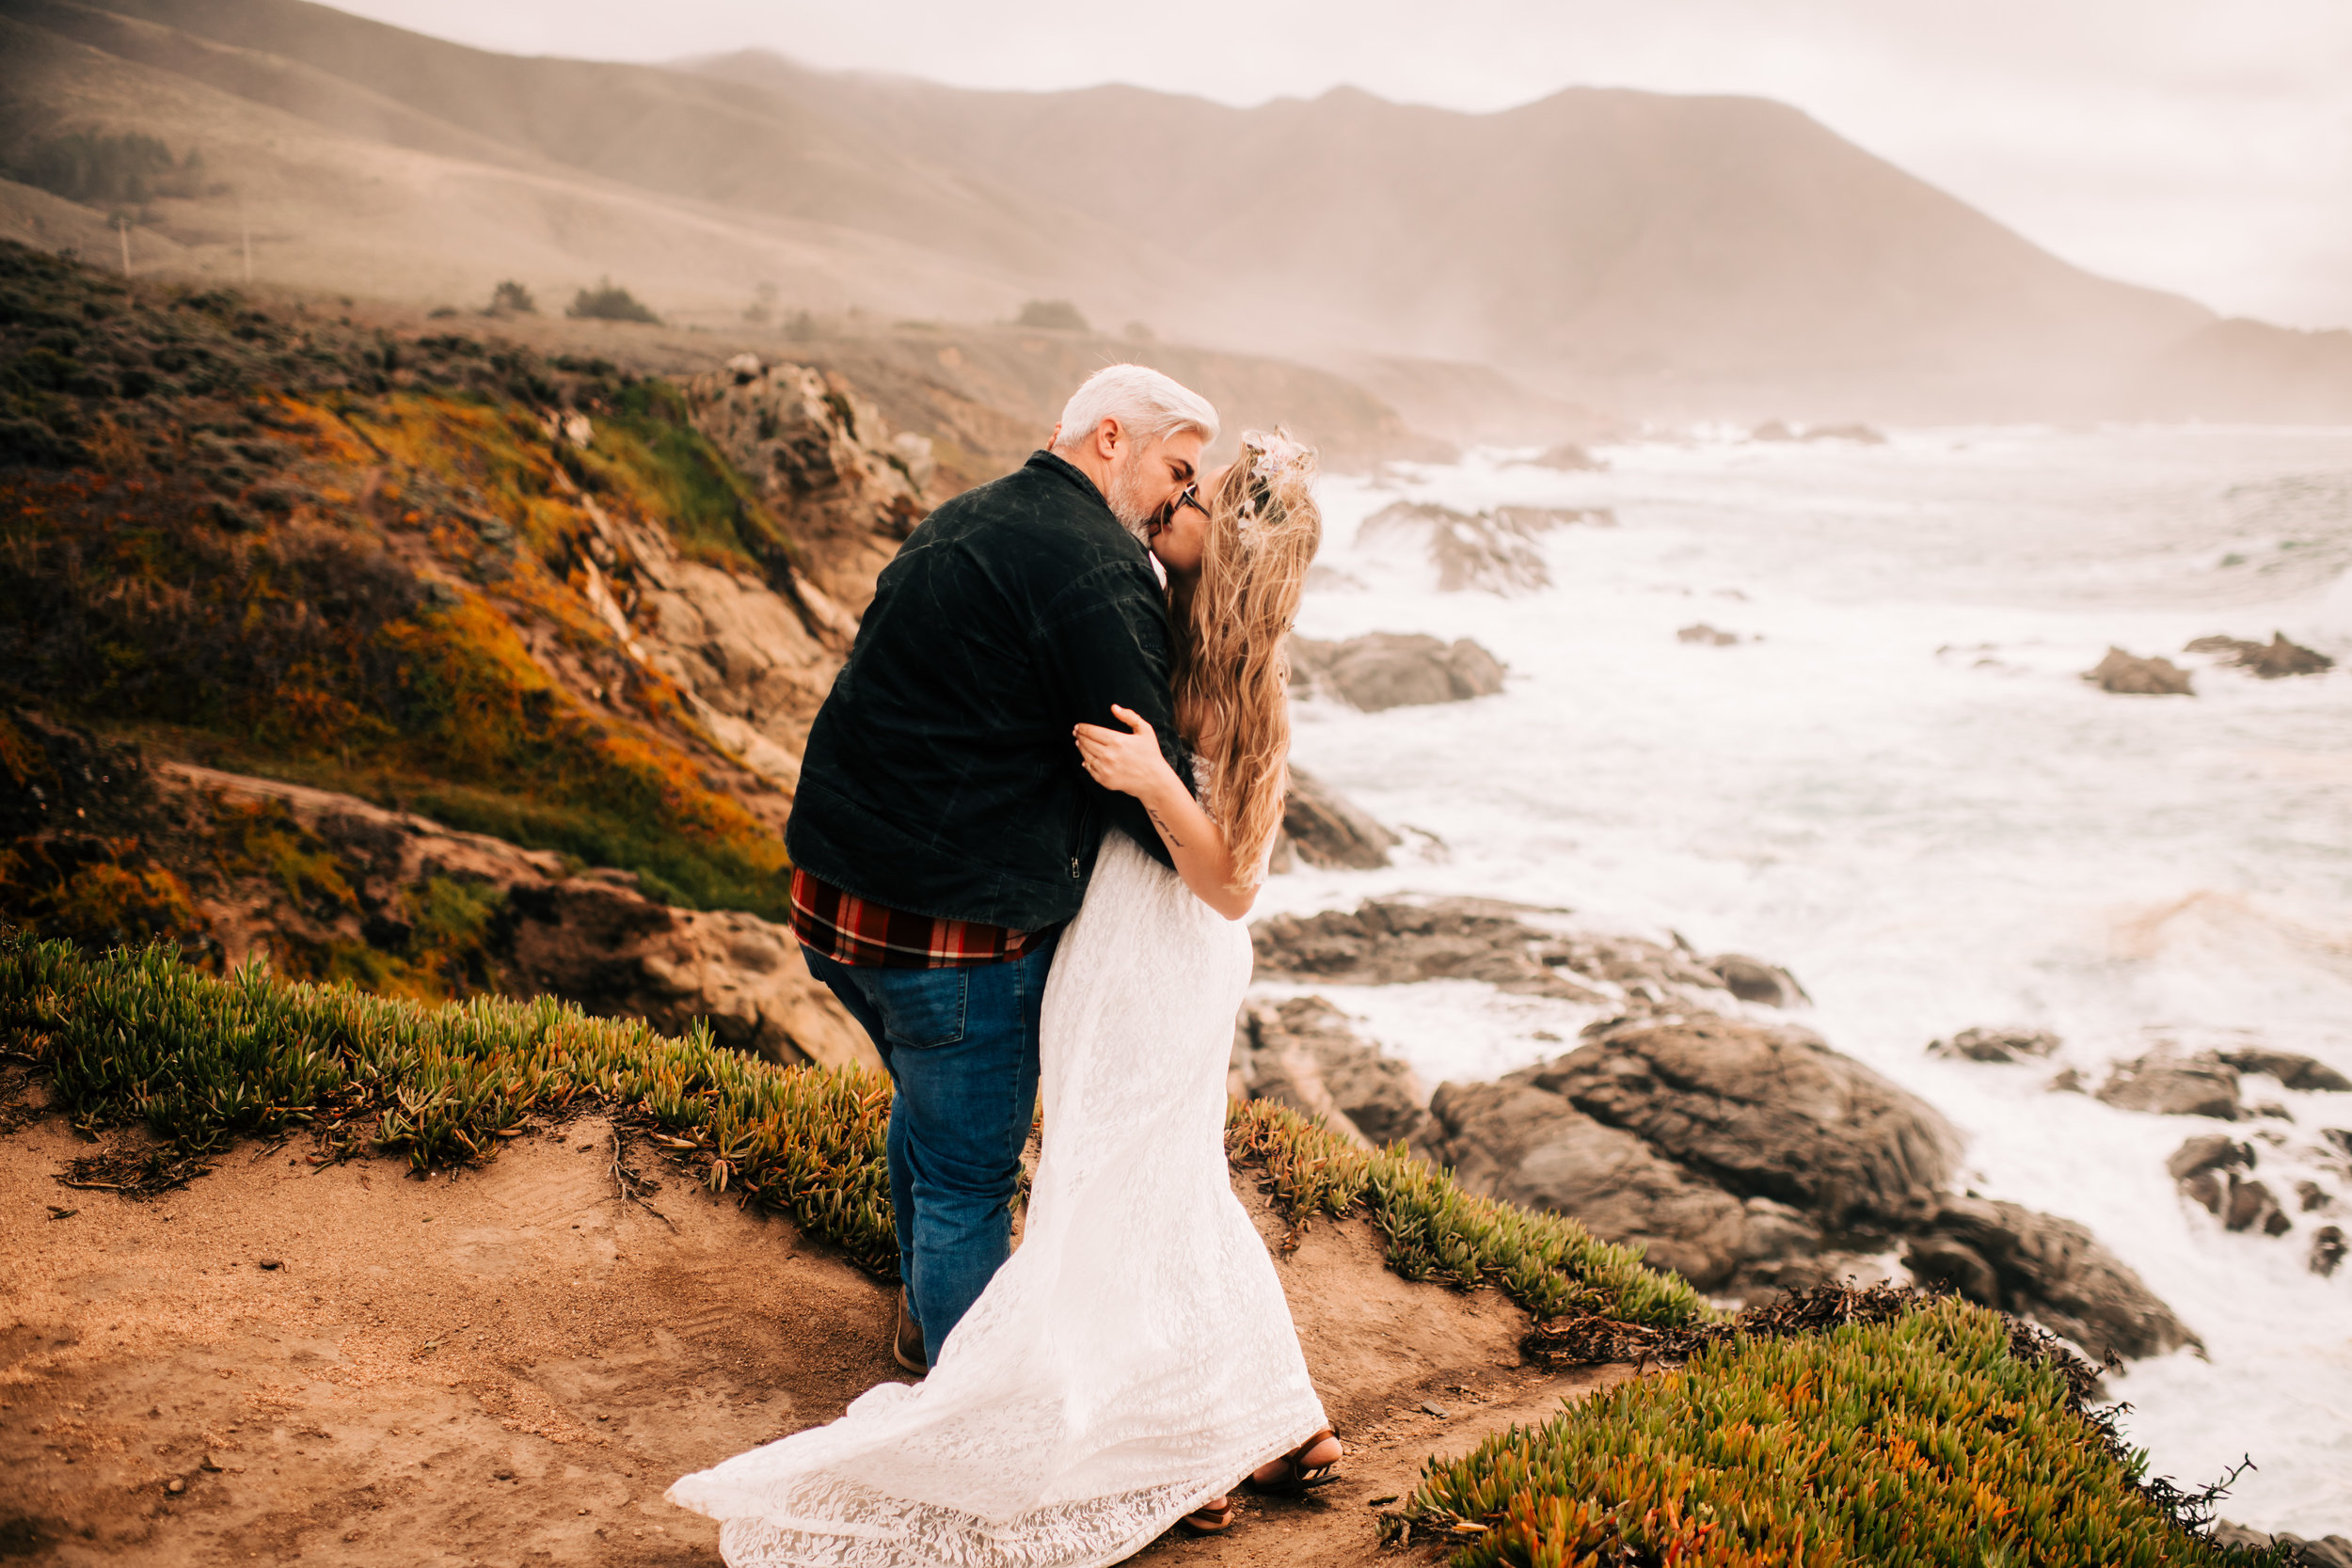 san francisco oakland bay area california sf yosemite big sur vow renewal nontraditional wedding photographer -145.jpg